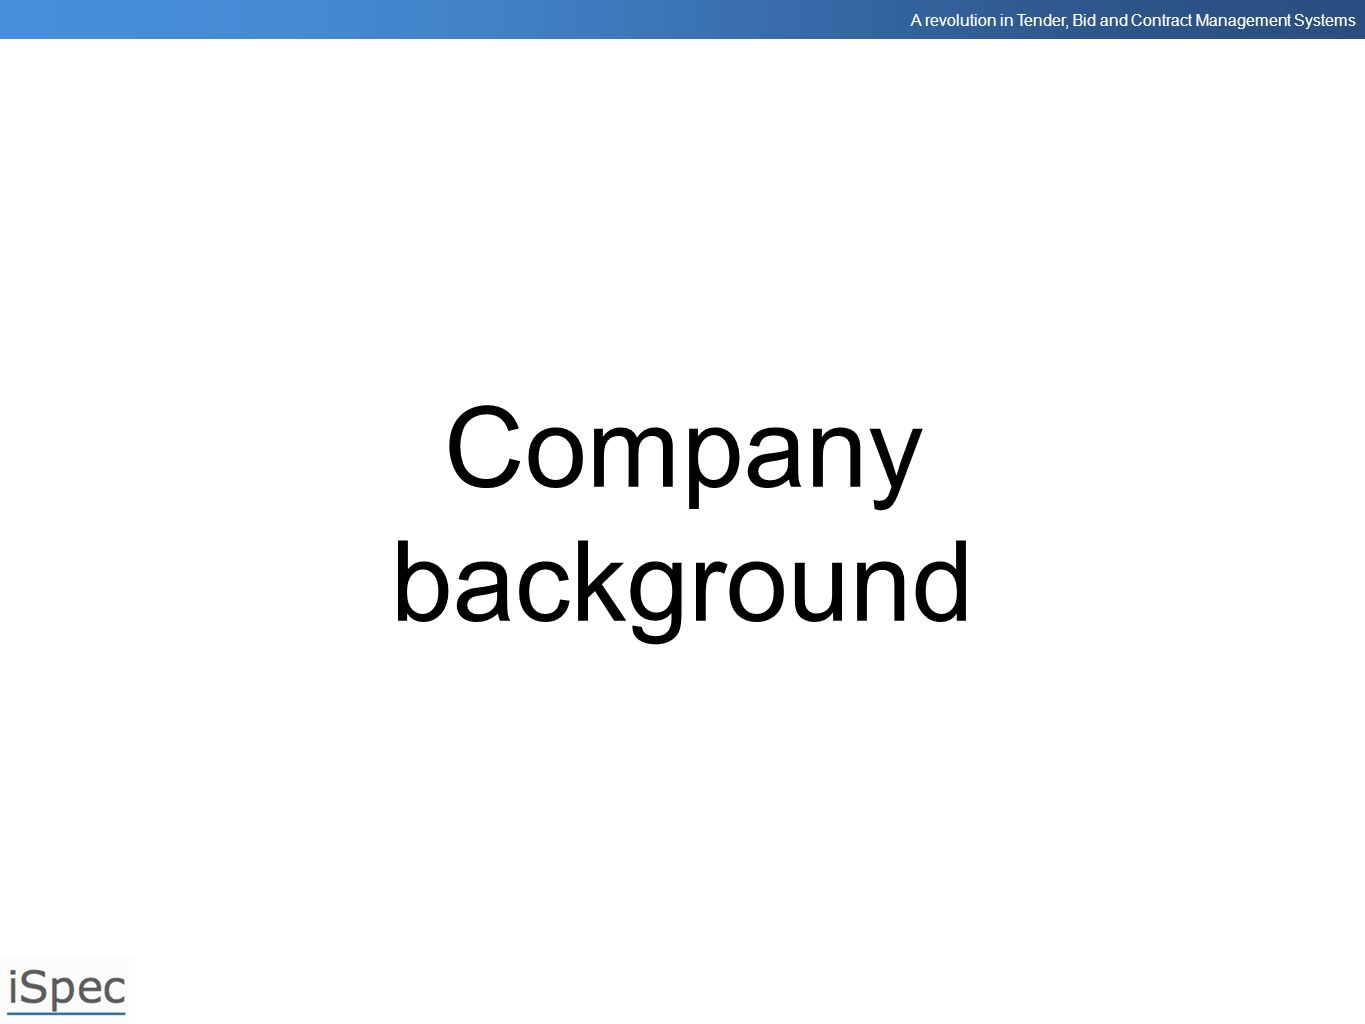 A revolution in Tender, Bid and Contract Management Systems Audit trail Audit trail - version tracking All changes recorded: By whom When Compare Roll back